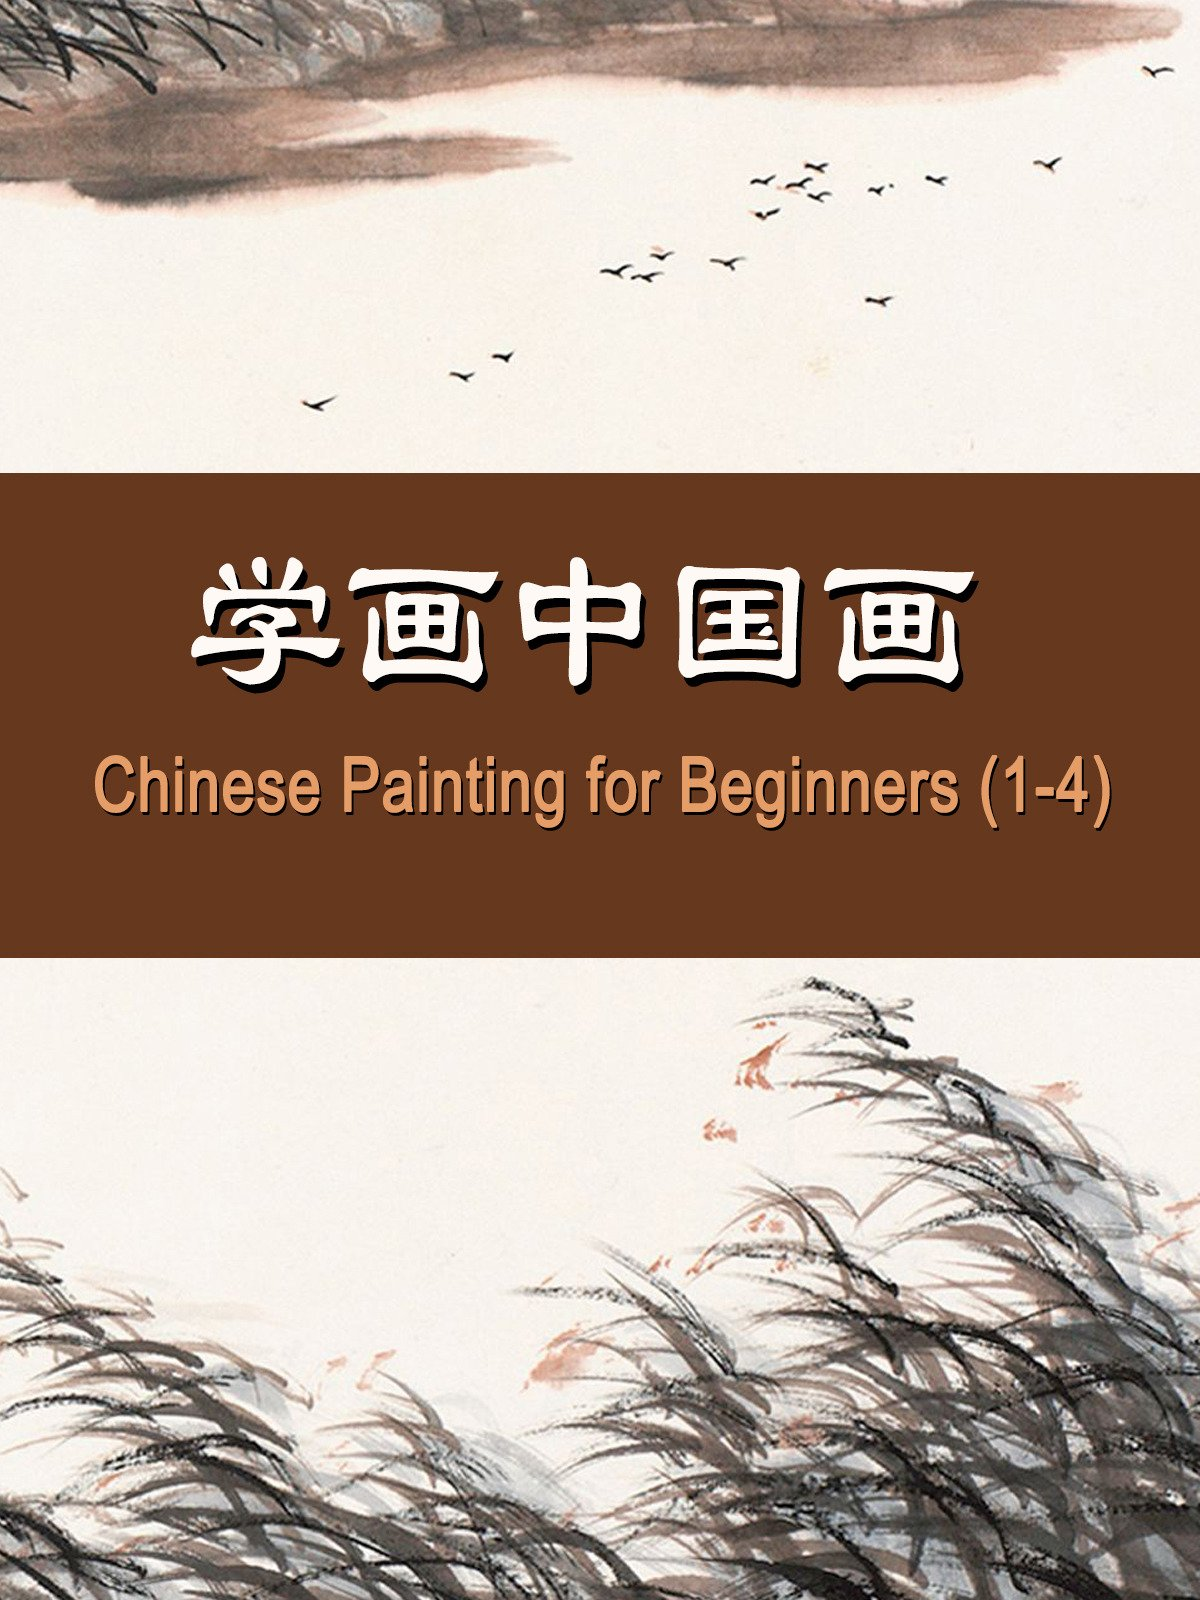 Chinese Painting for Beginners 1-4